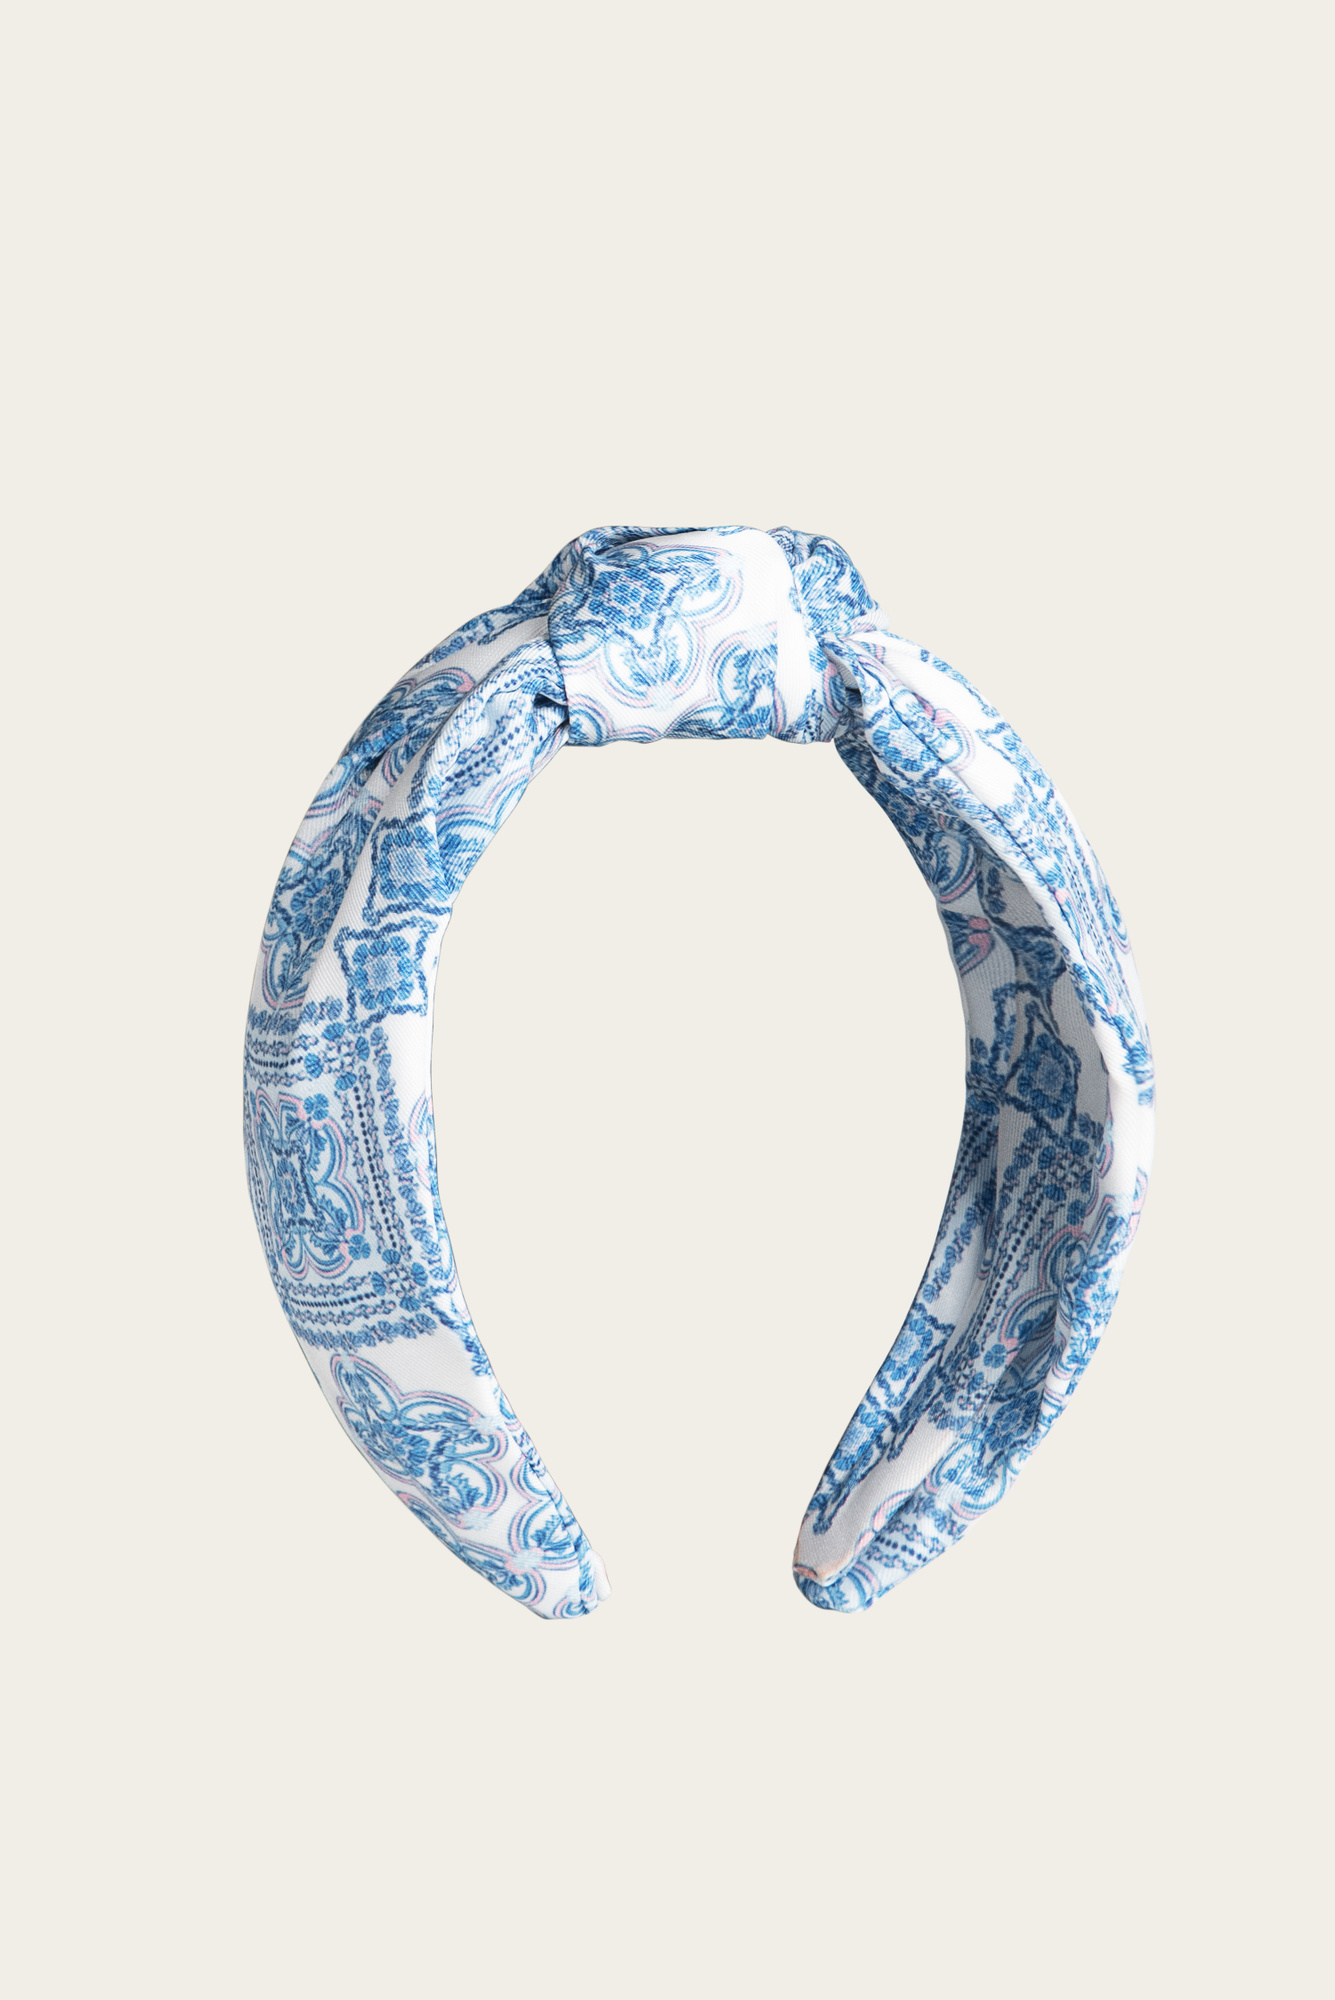 1163_889bcedf61-mini-tess-headband-ocean-breeze-by-malina-big.jpg